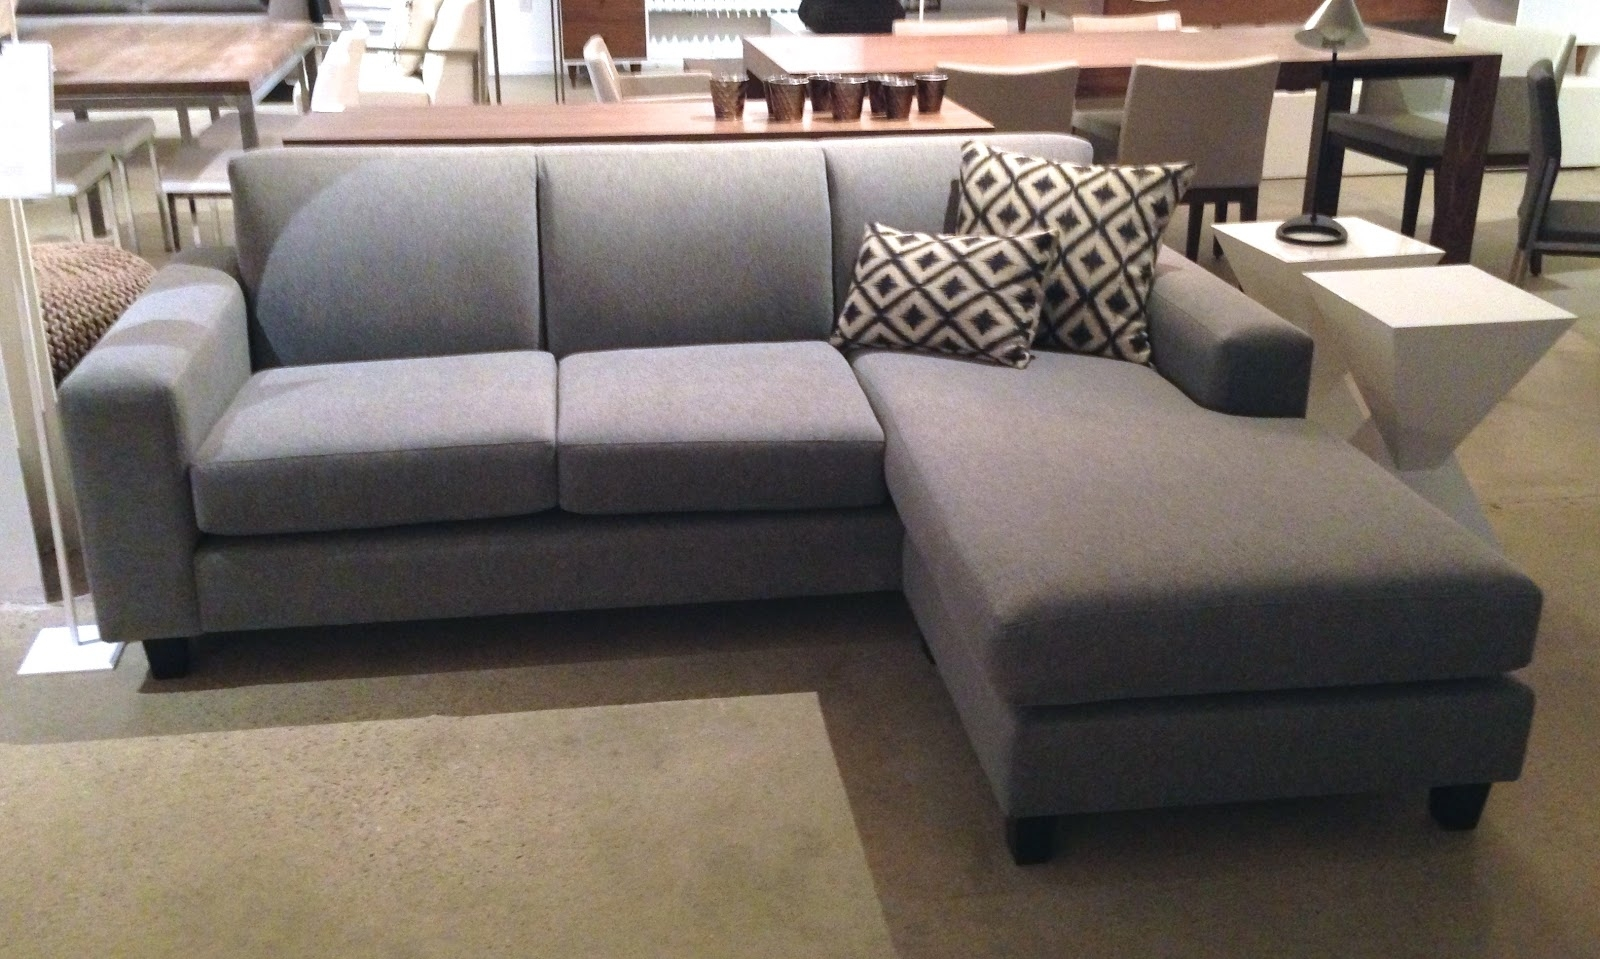 Modular Sectional Sofa Canada | Functionalities Pertaining To Sectional Sofas In Canada (View 4 of 10)